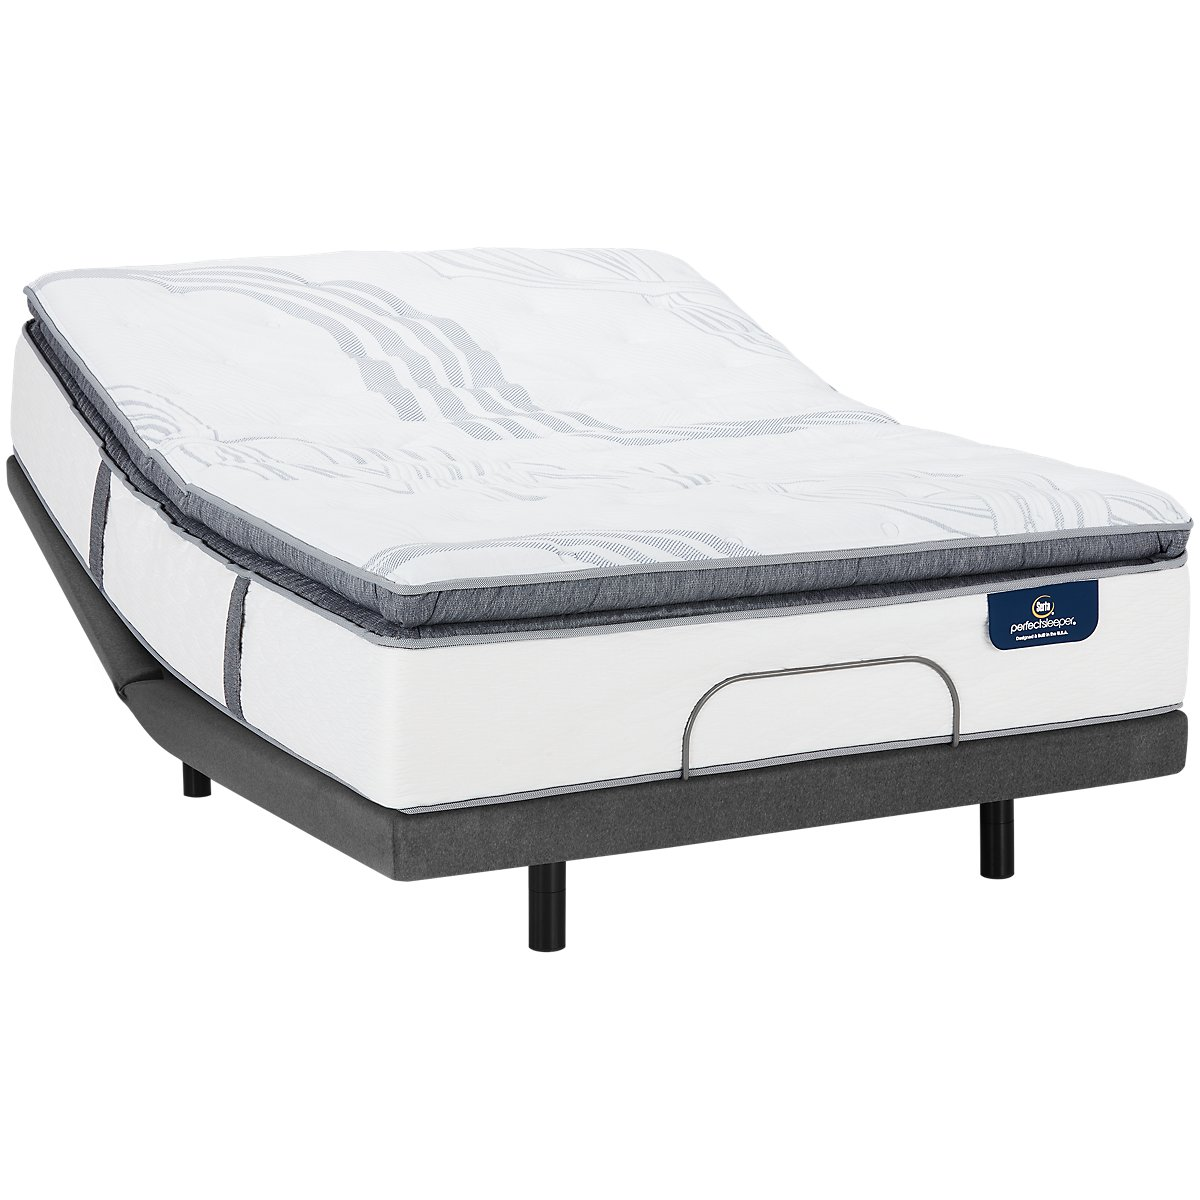 Serta Perfect Sleeper Ridgley Plush Elite Adjustable Mattress Set